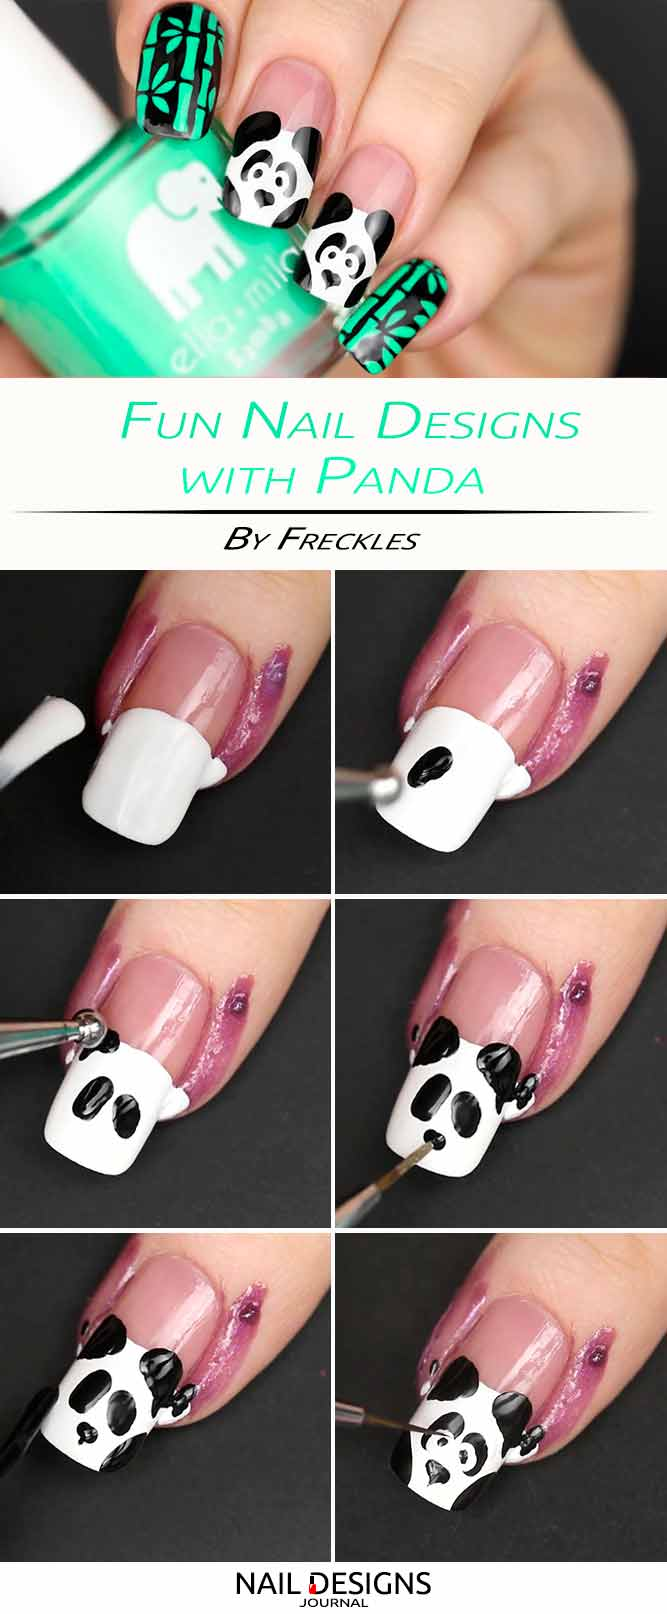 Fun Nail Designs with Panda